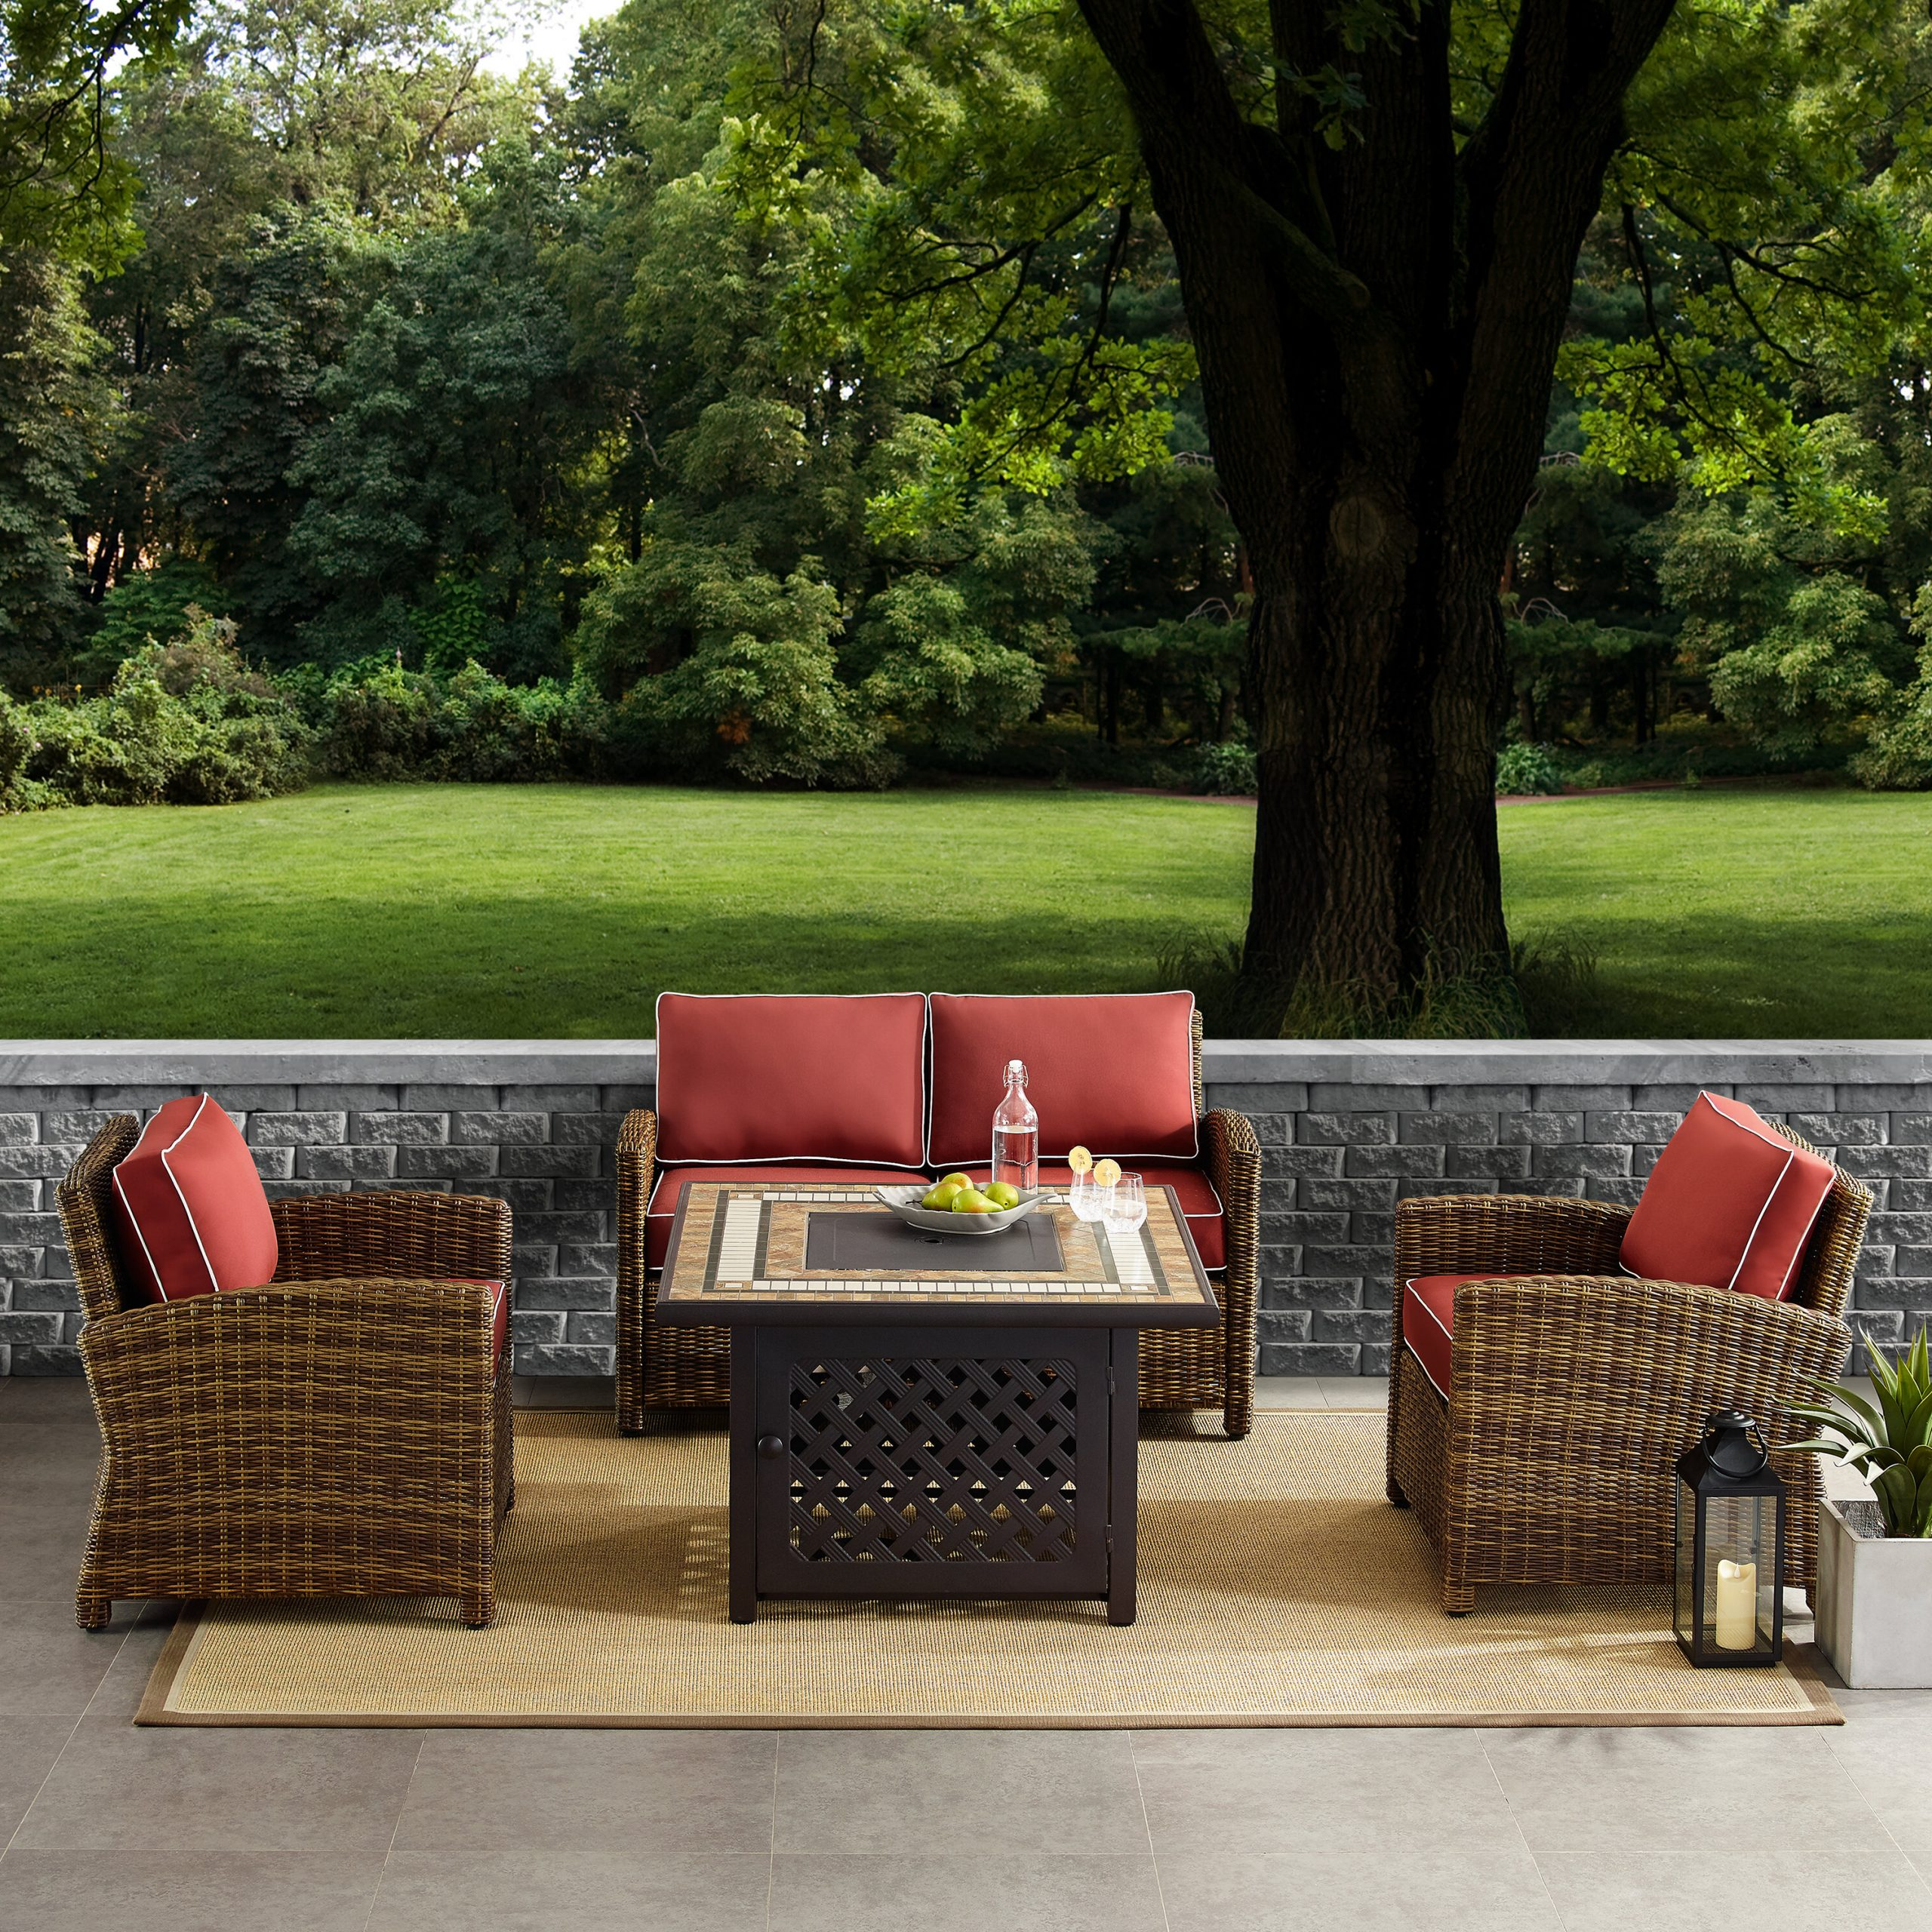 Lawson 4 Piece Outdoor Wicker Seating Set With Navy Cushions – Loveseat, Two Arm Chairs Fire Table Intended For Recent Lawson Wicker Loveseats With Cushions (Gallery 23 of 25)